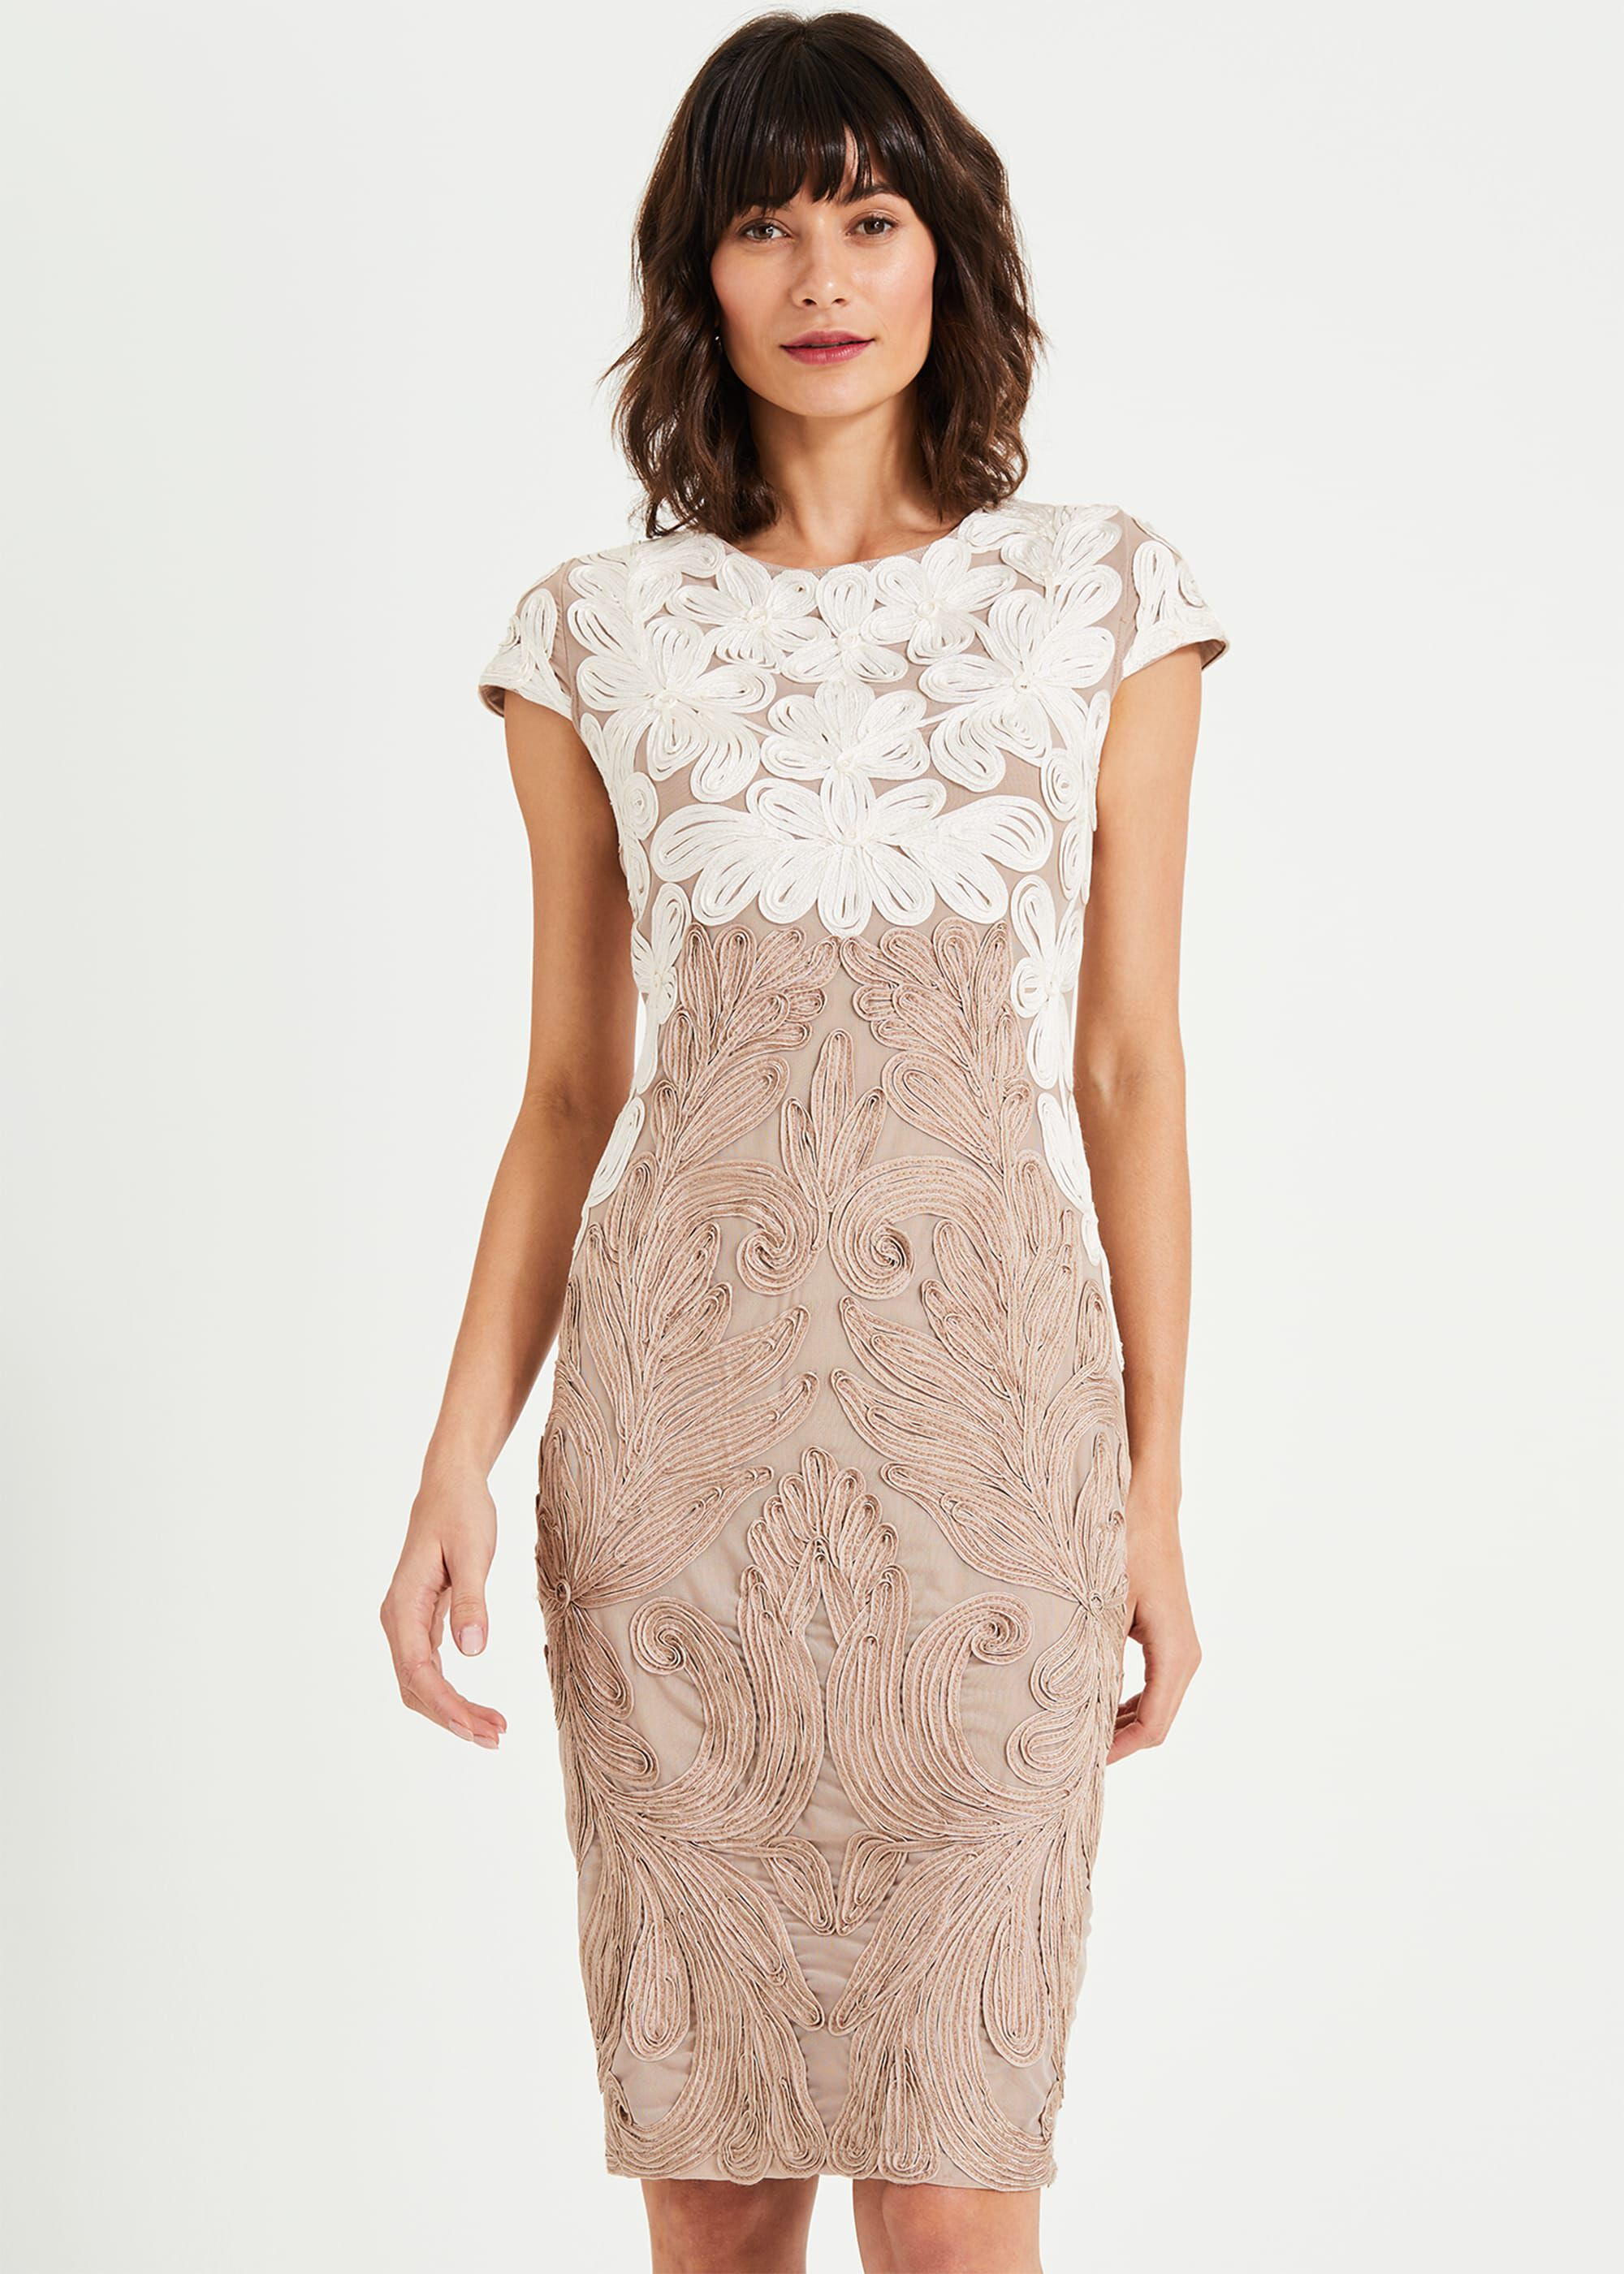 Phase Eight Catheleen Tapework Dress, Cream, Fitted, Occasion Dress